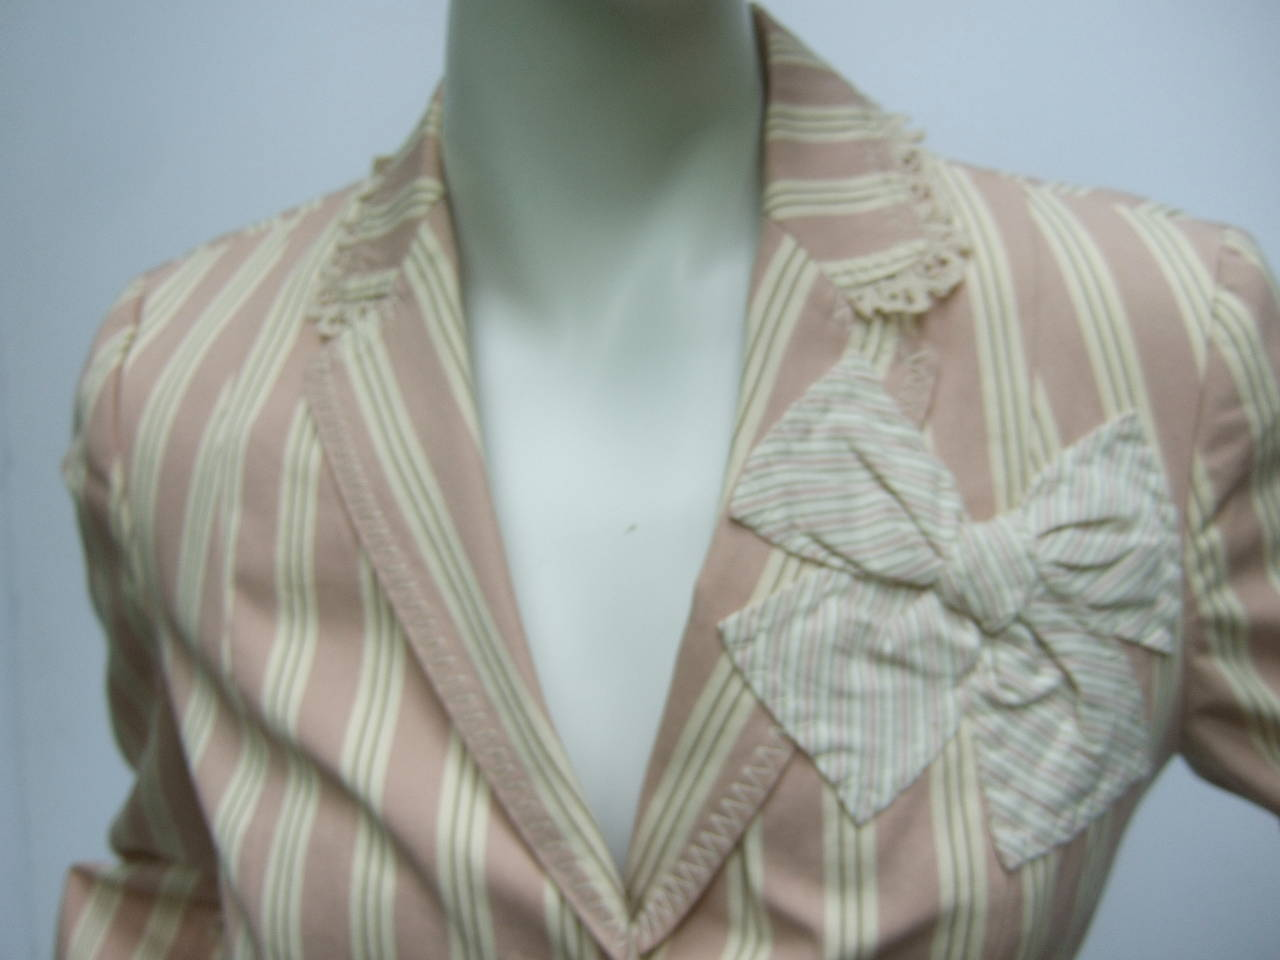 Moschino Cotton Awning Striped Jacket US Size 8 In Excellent Condition For Sale In Santa Barbara, CA